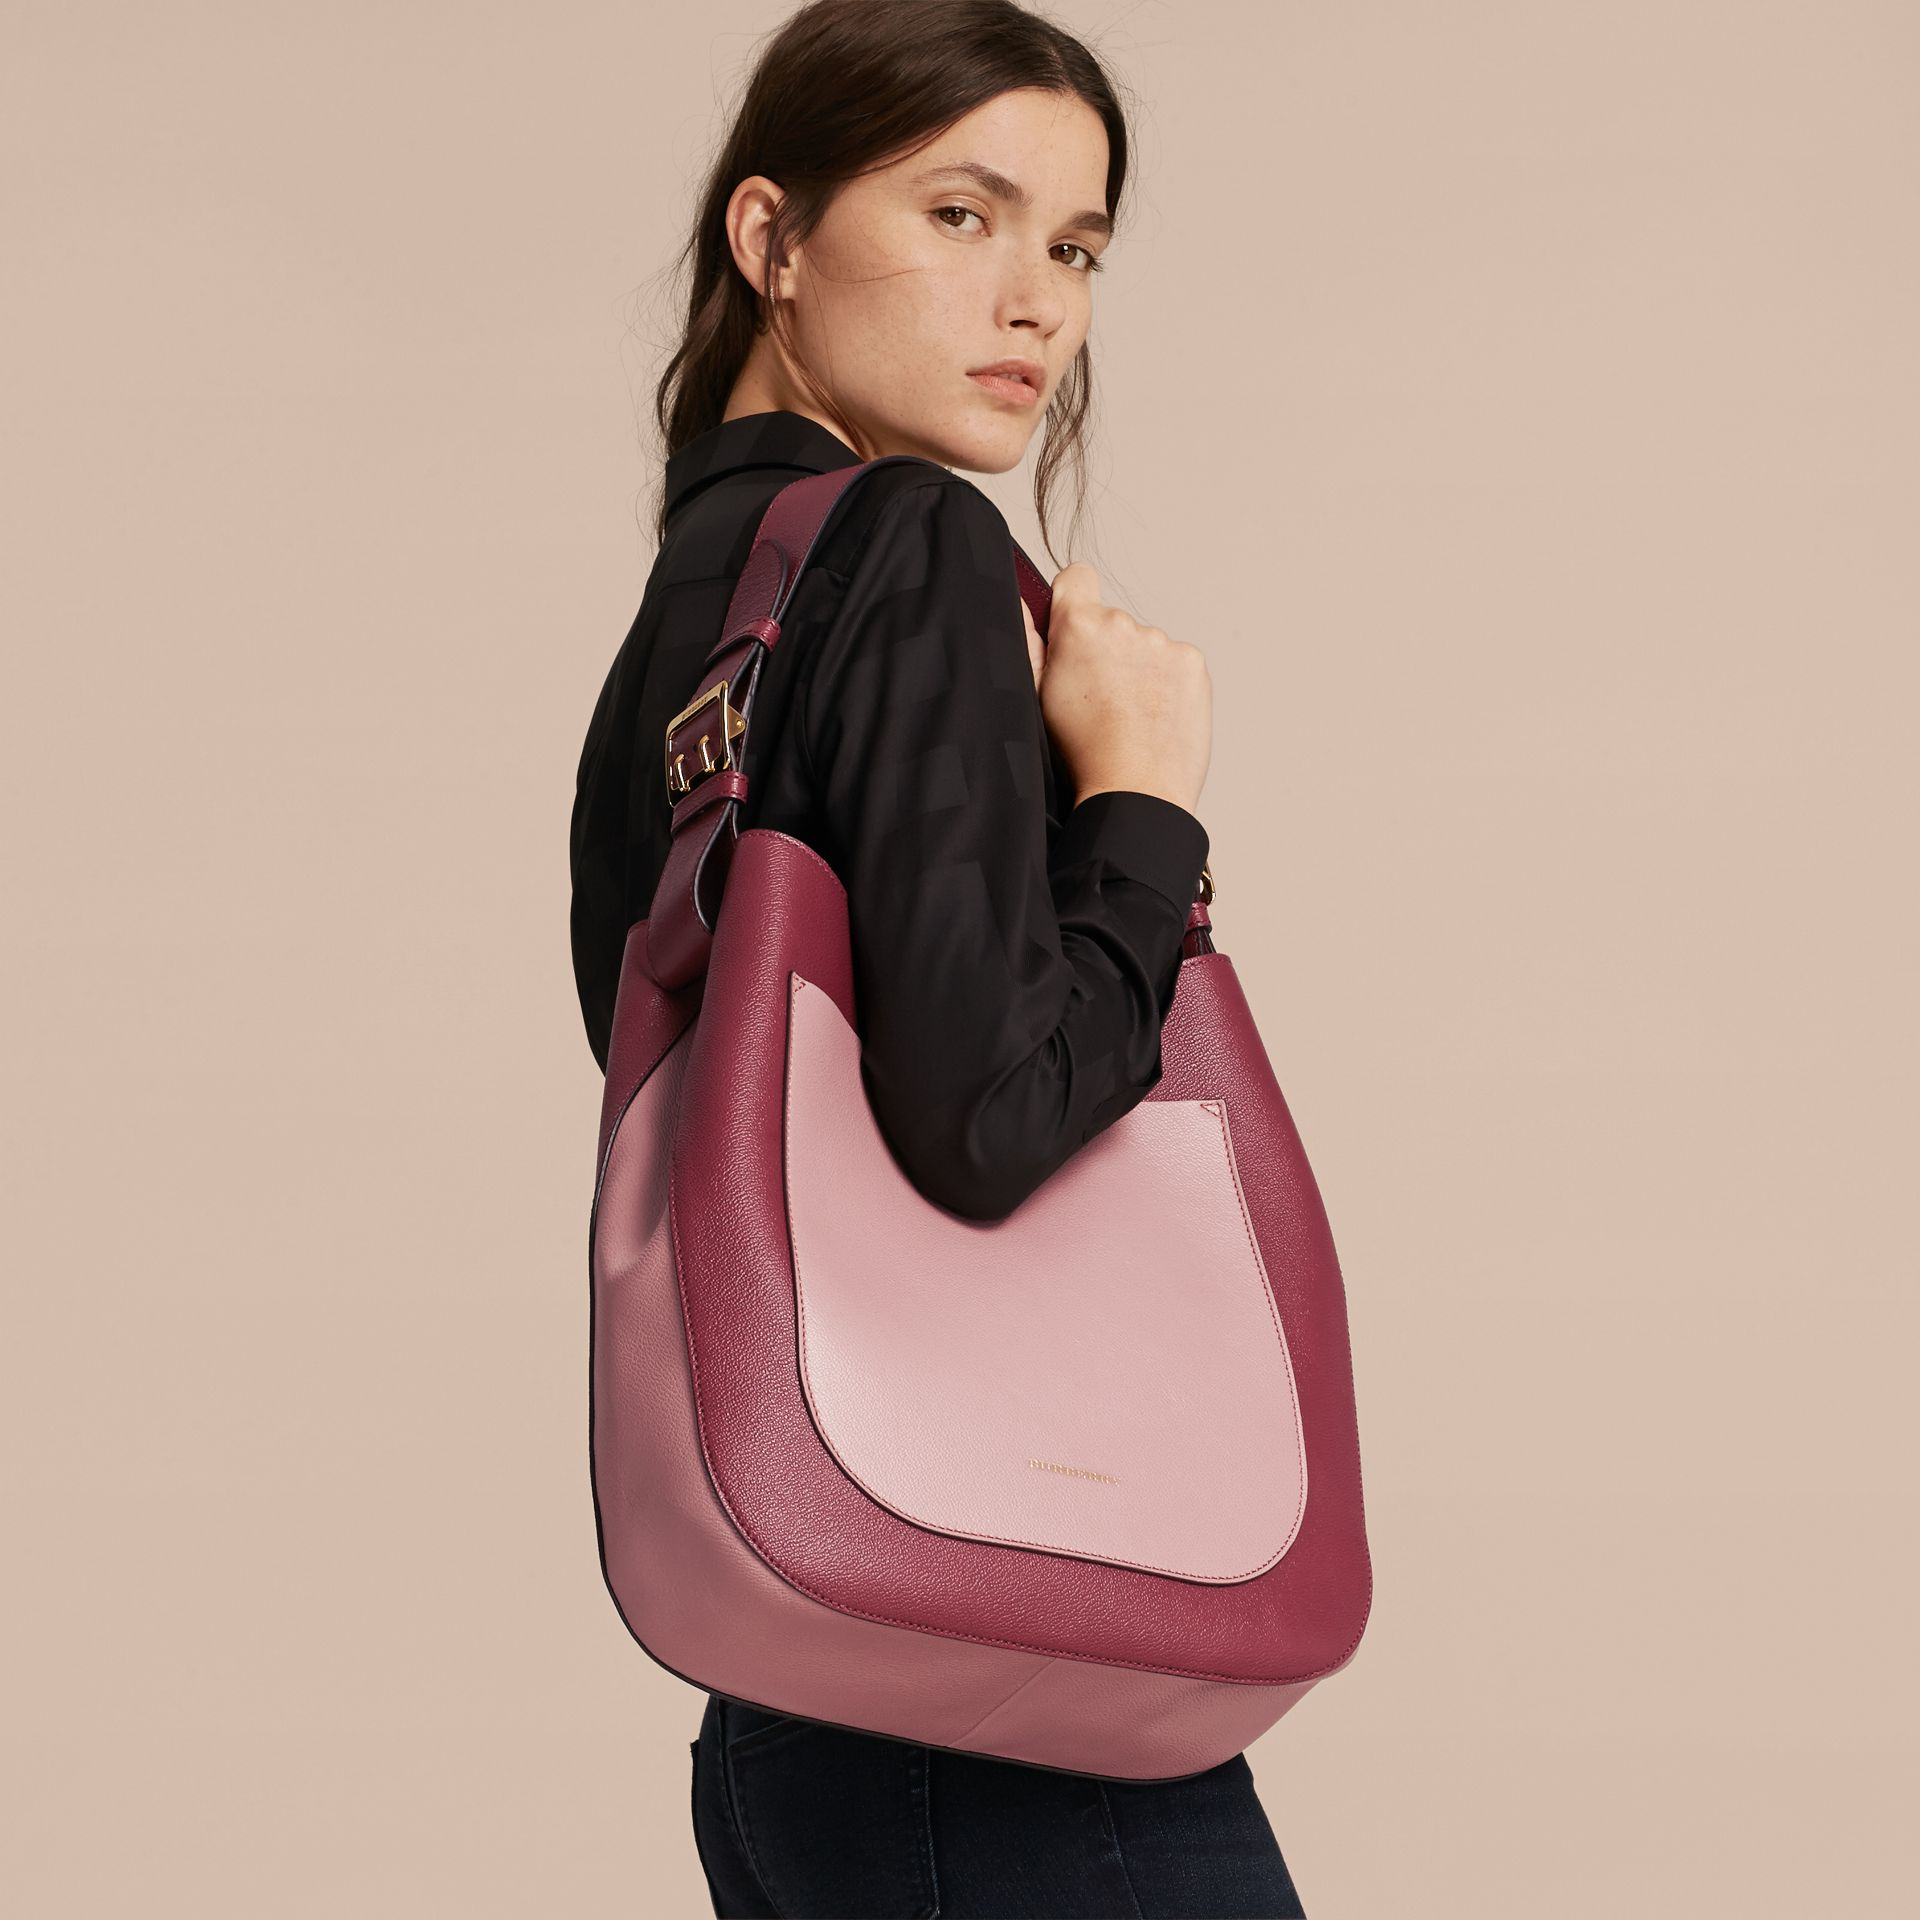 Textured Leather Shoulder Bag in Dark Plum/ Dusty Pink - gallery image 3